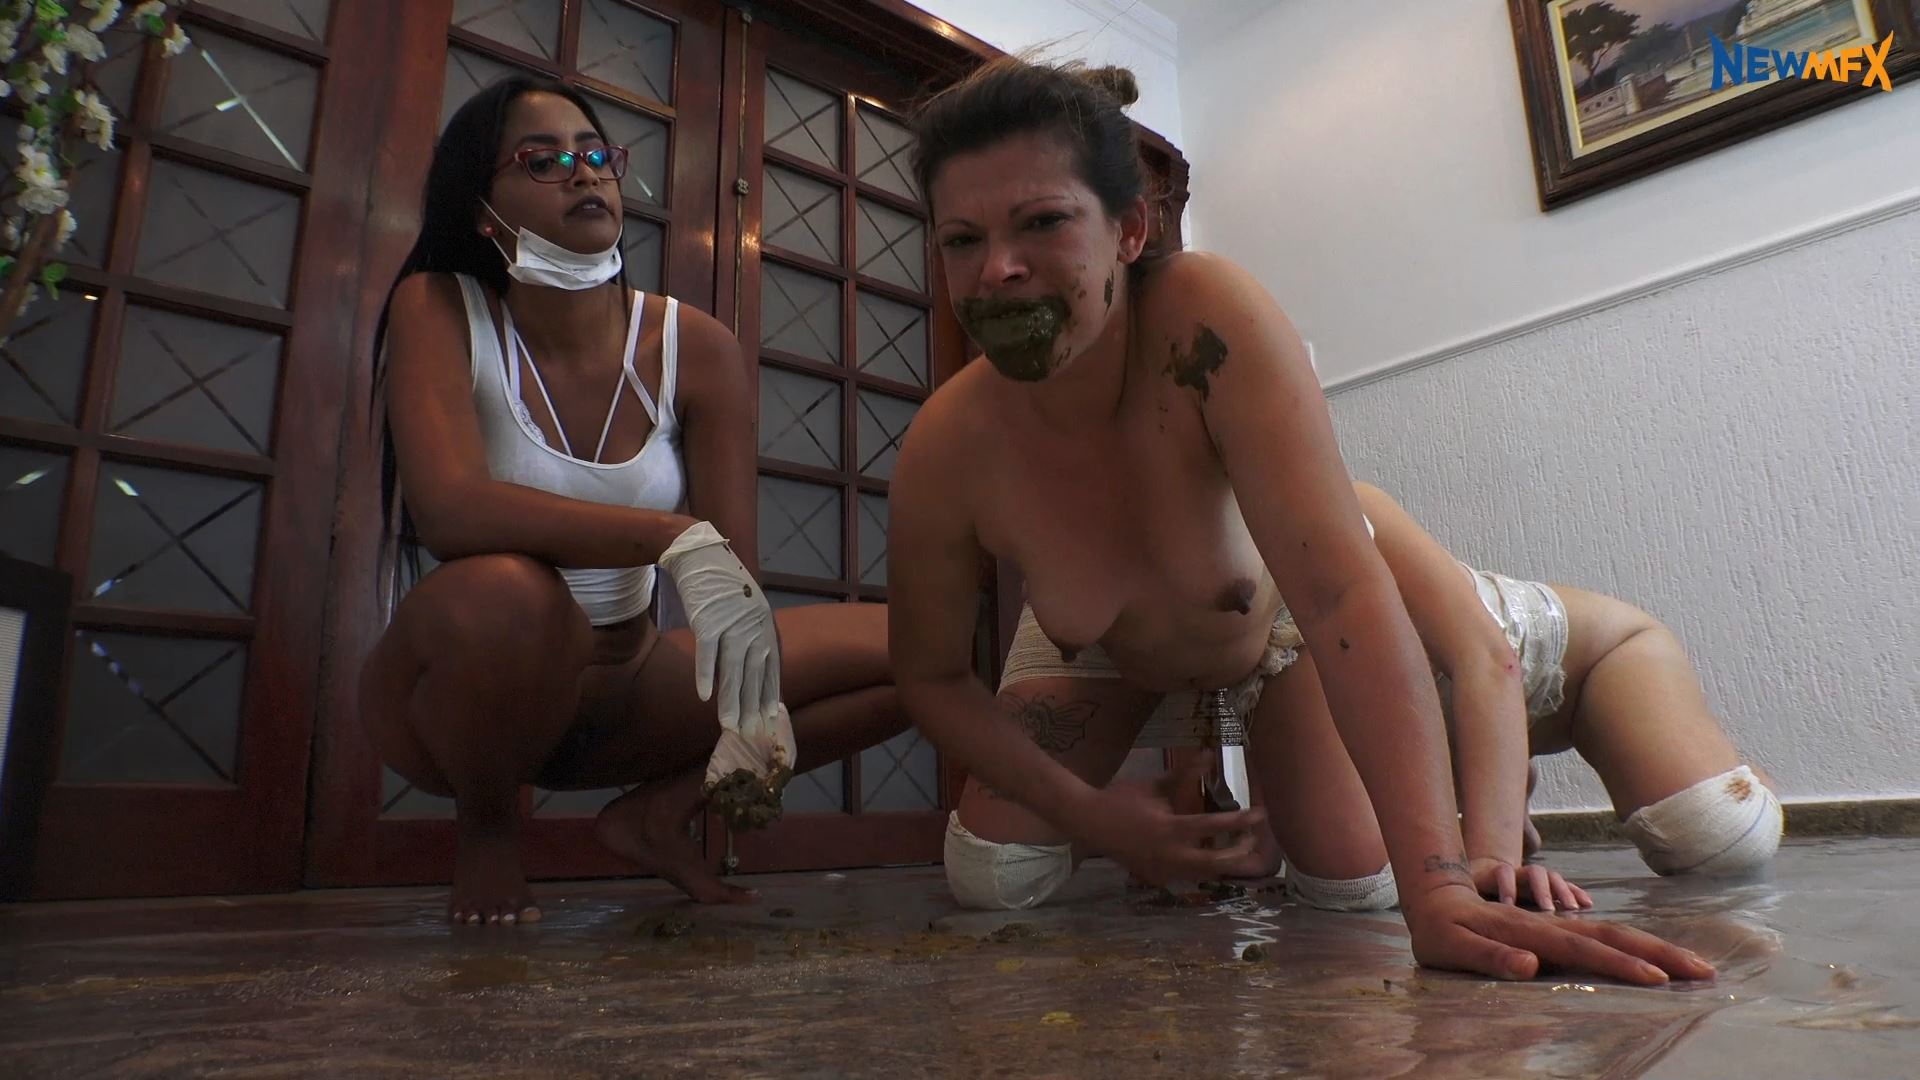 [NEW SCAT IN BRAZIL / NEWMFX] HUMAN CENTIPEDE - THE EXPERIENCE. Featuring: Diana, Bruna, Isa Blue [FULL HD][1080p][MP4]